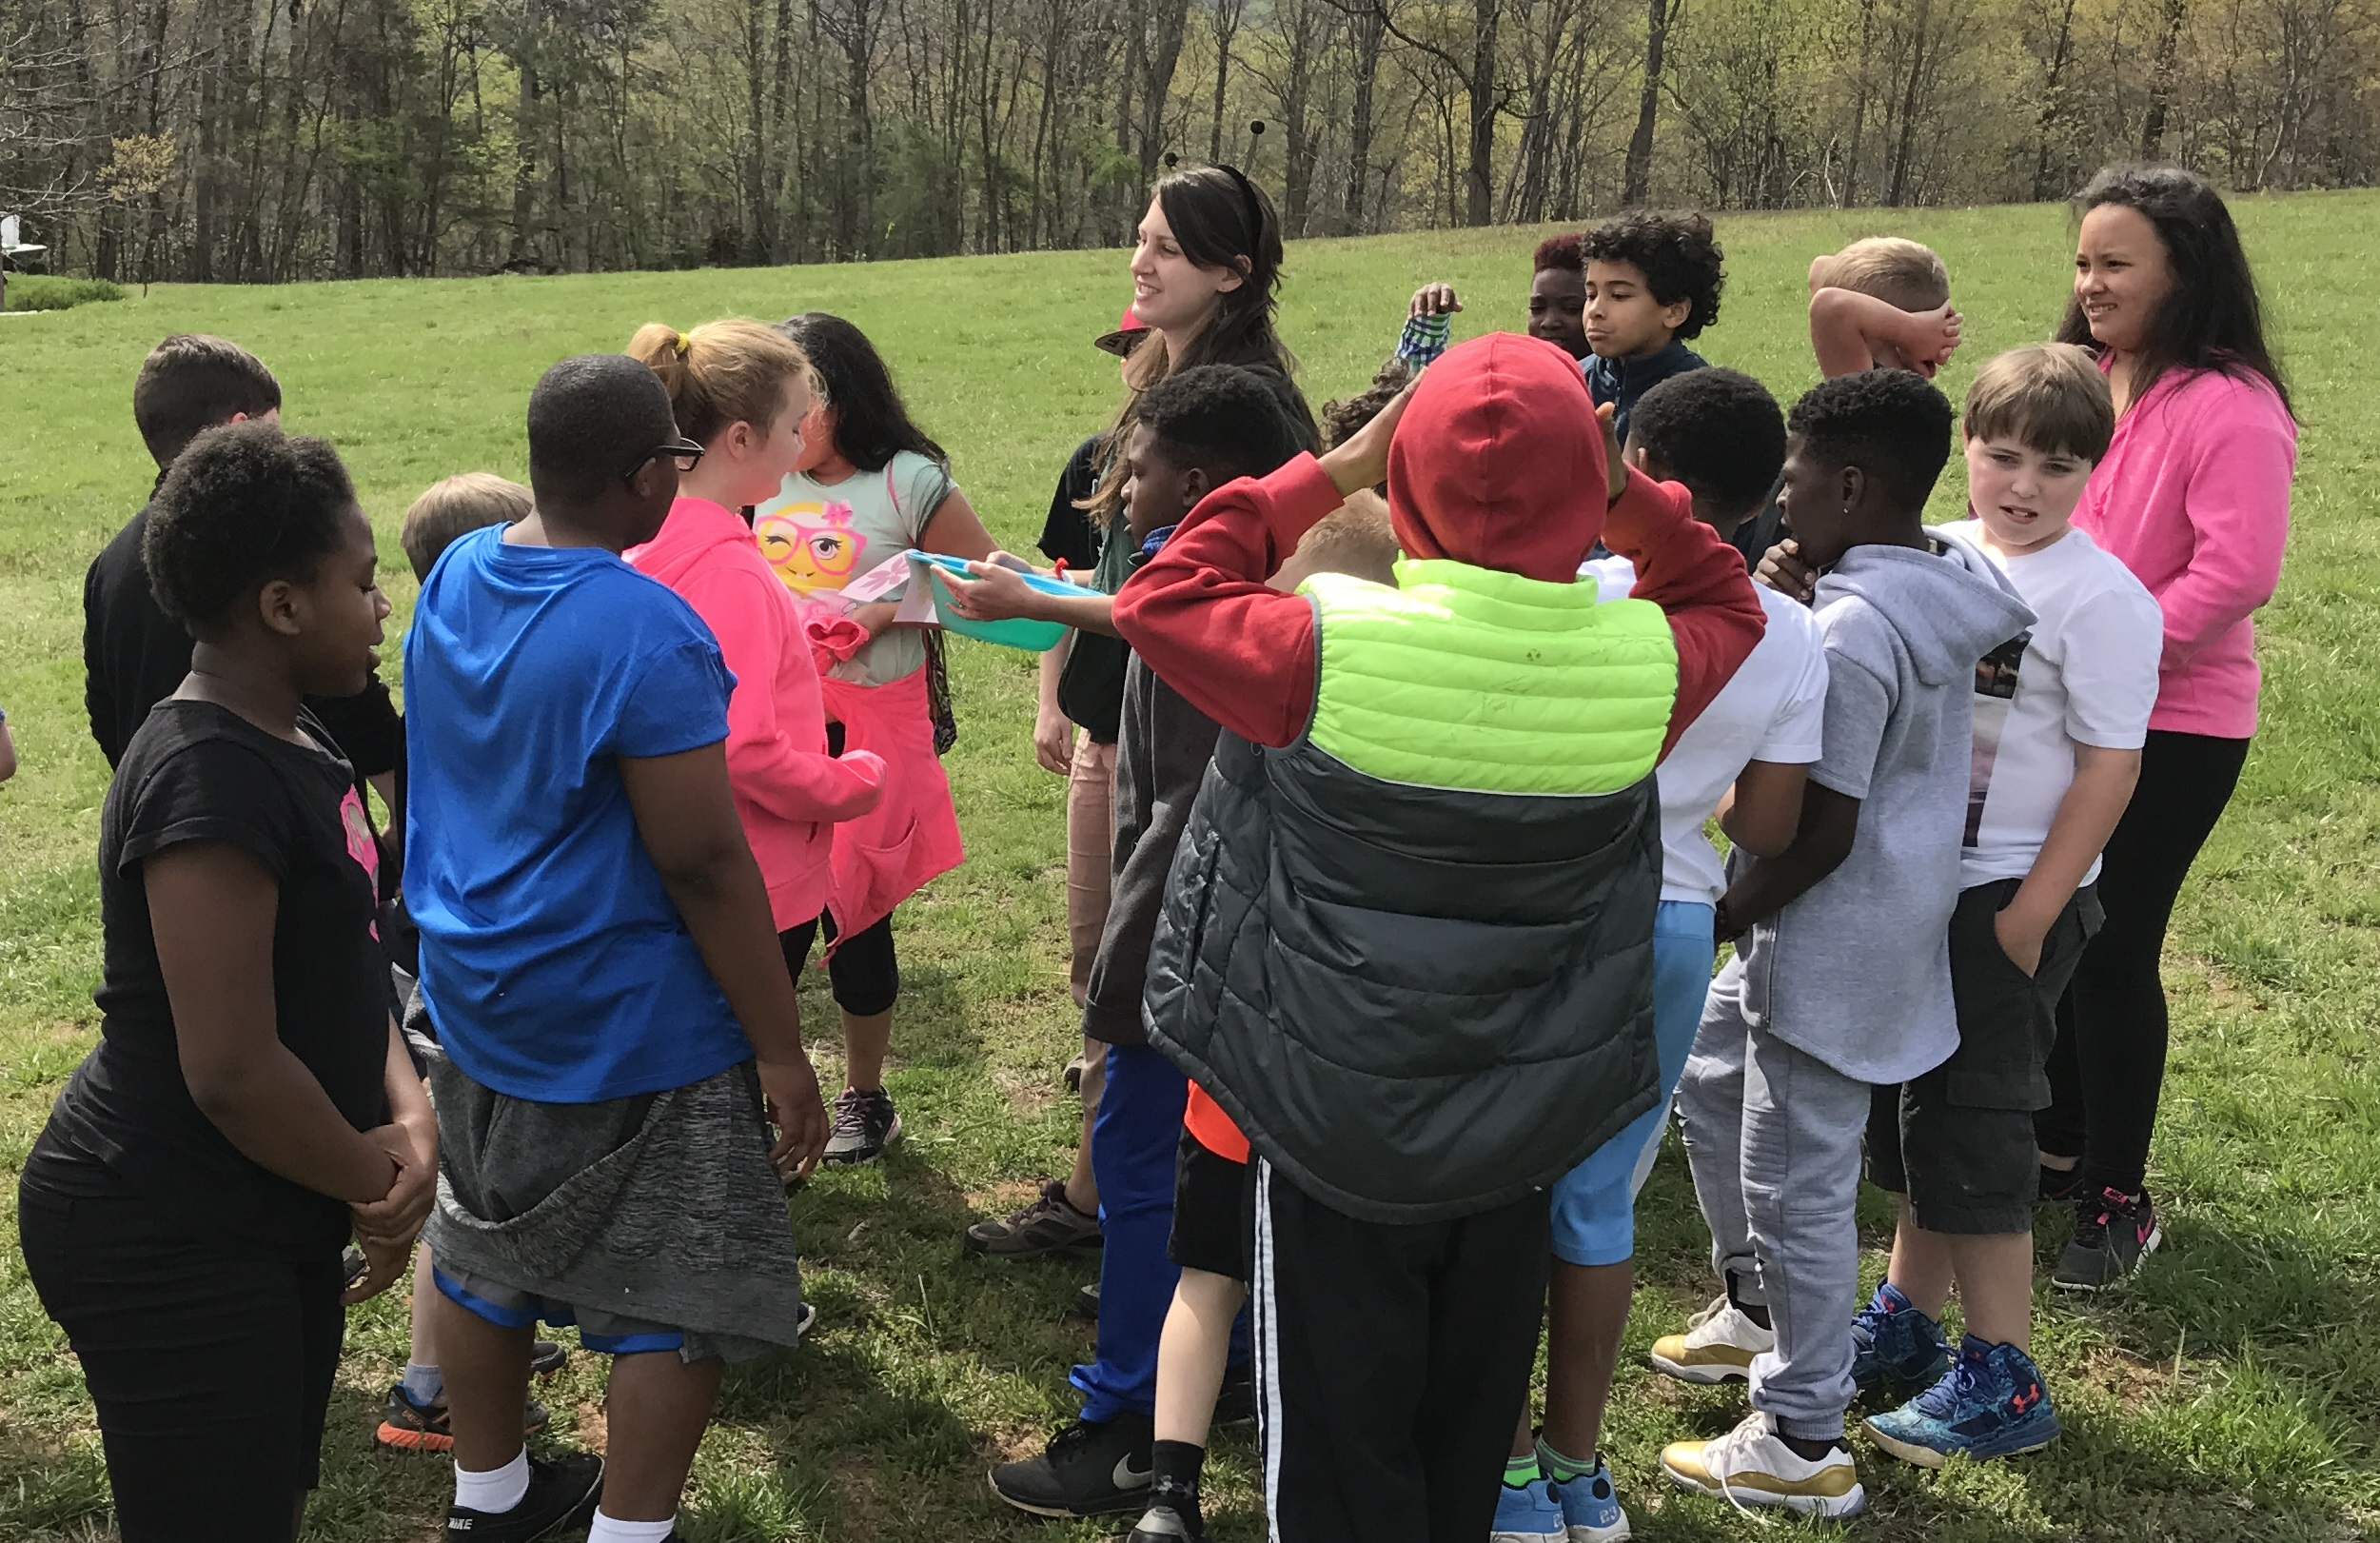 Lowell Elementary School visits Chimney Rock at Chimney Rock State Park